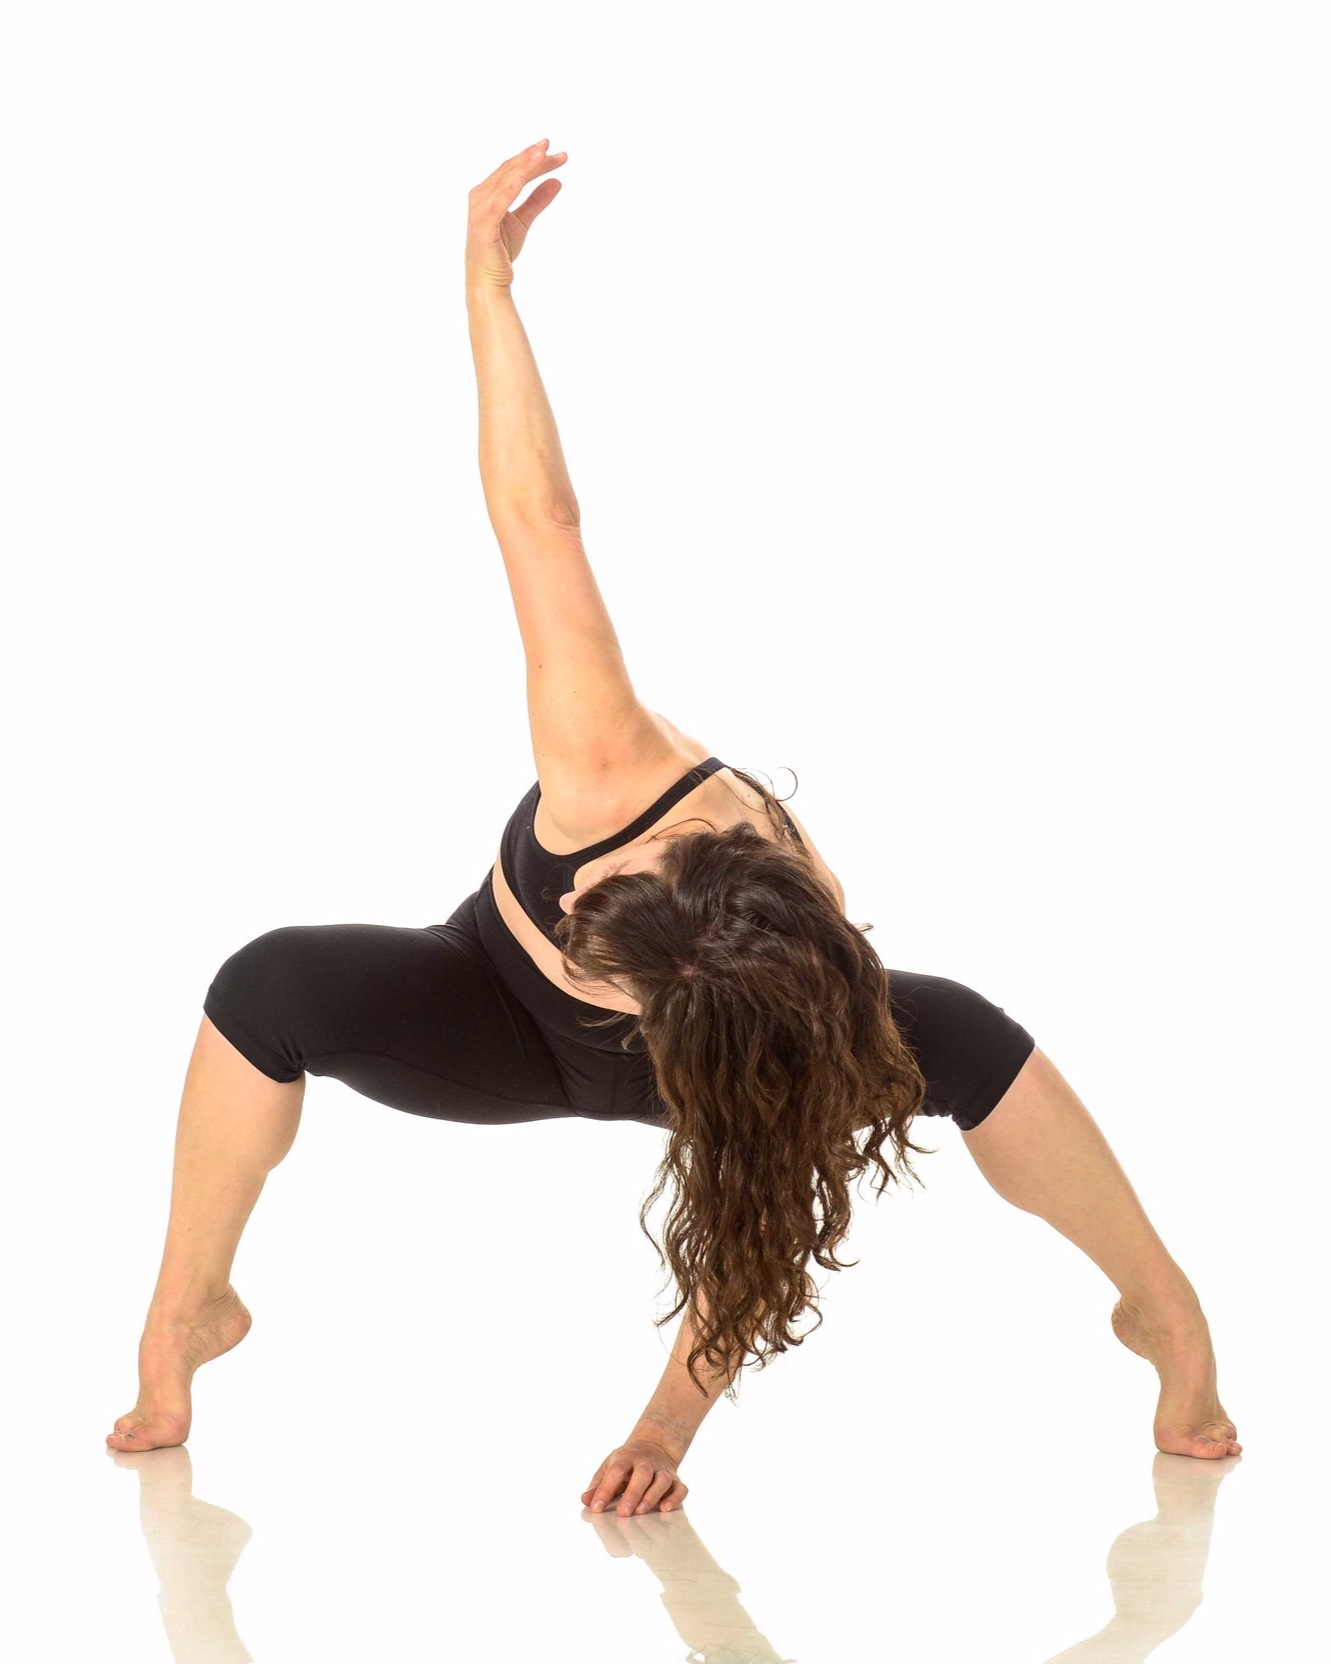 Amanda in black sports bra and legs, in an off kilter plie, one arm up one arm down, face obscured by long curly brown hair.